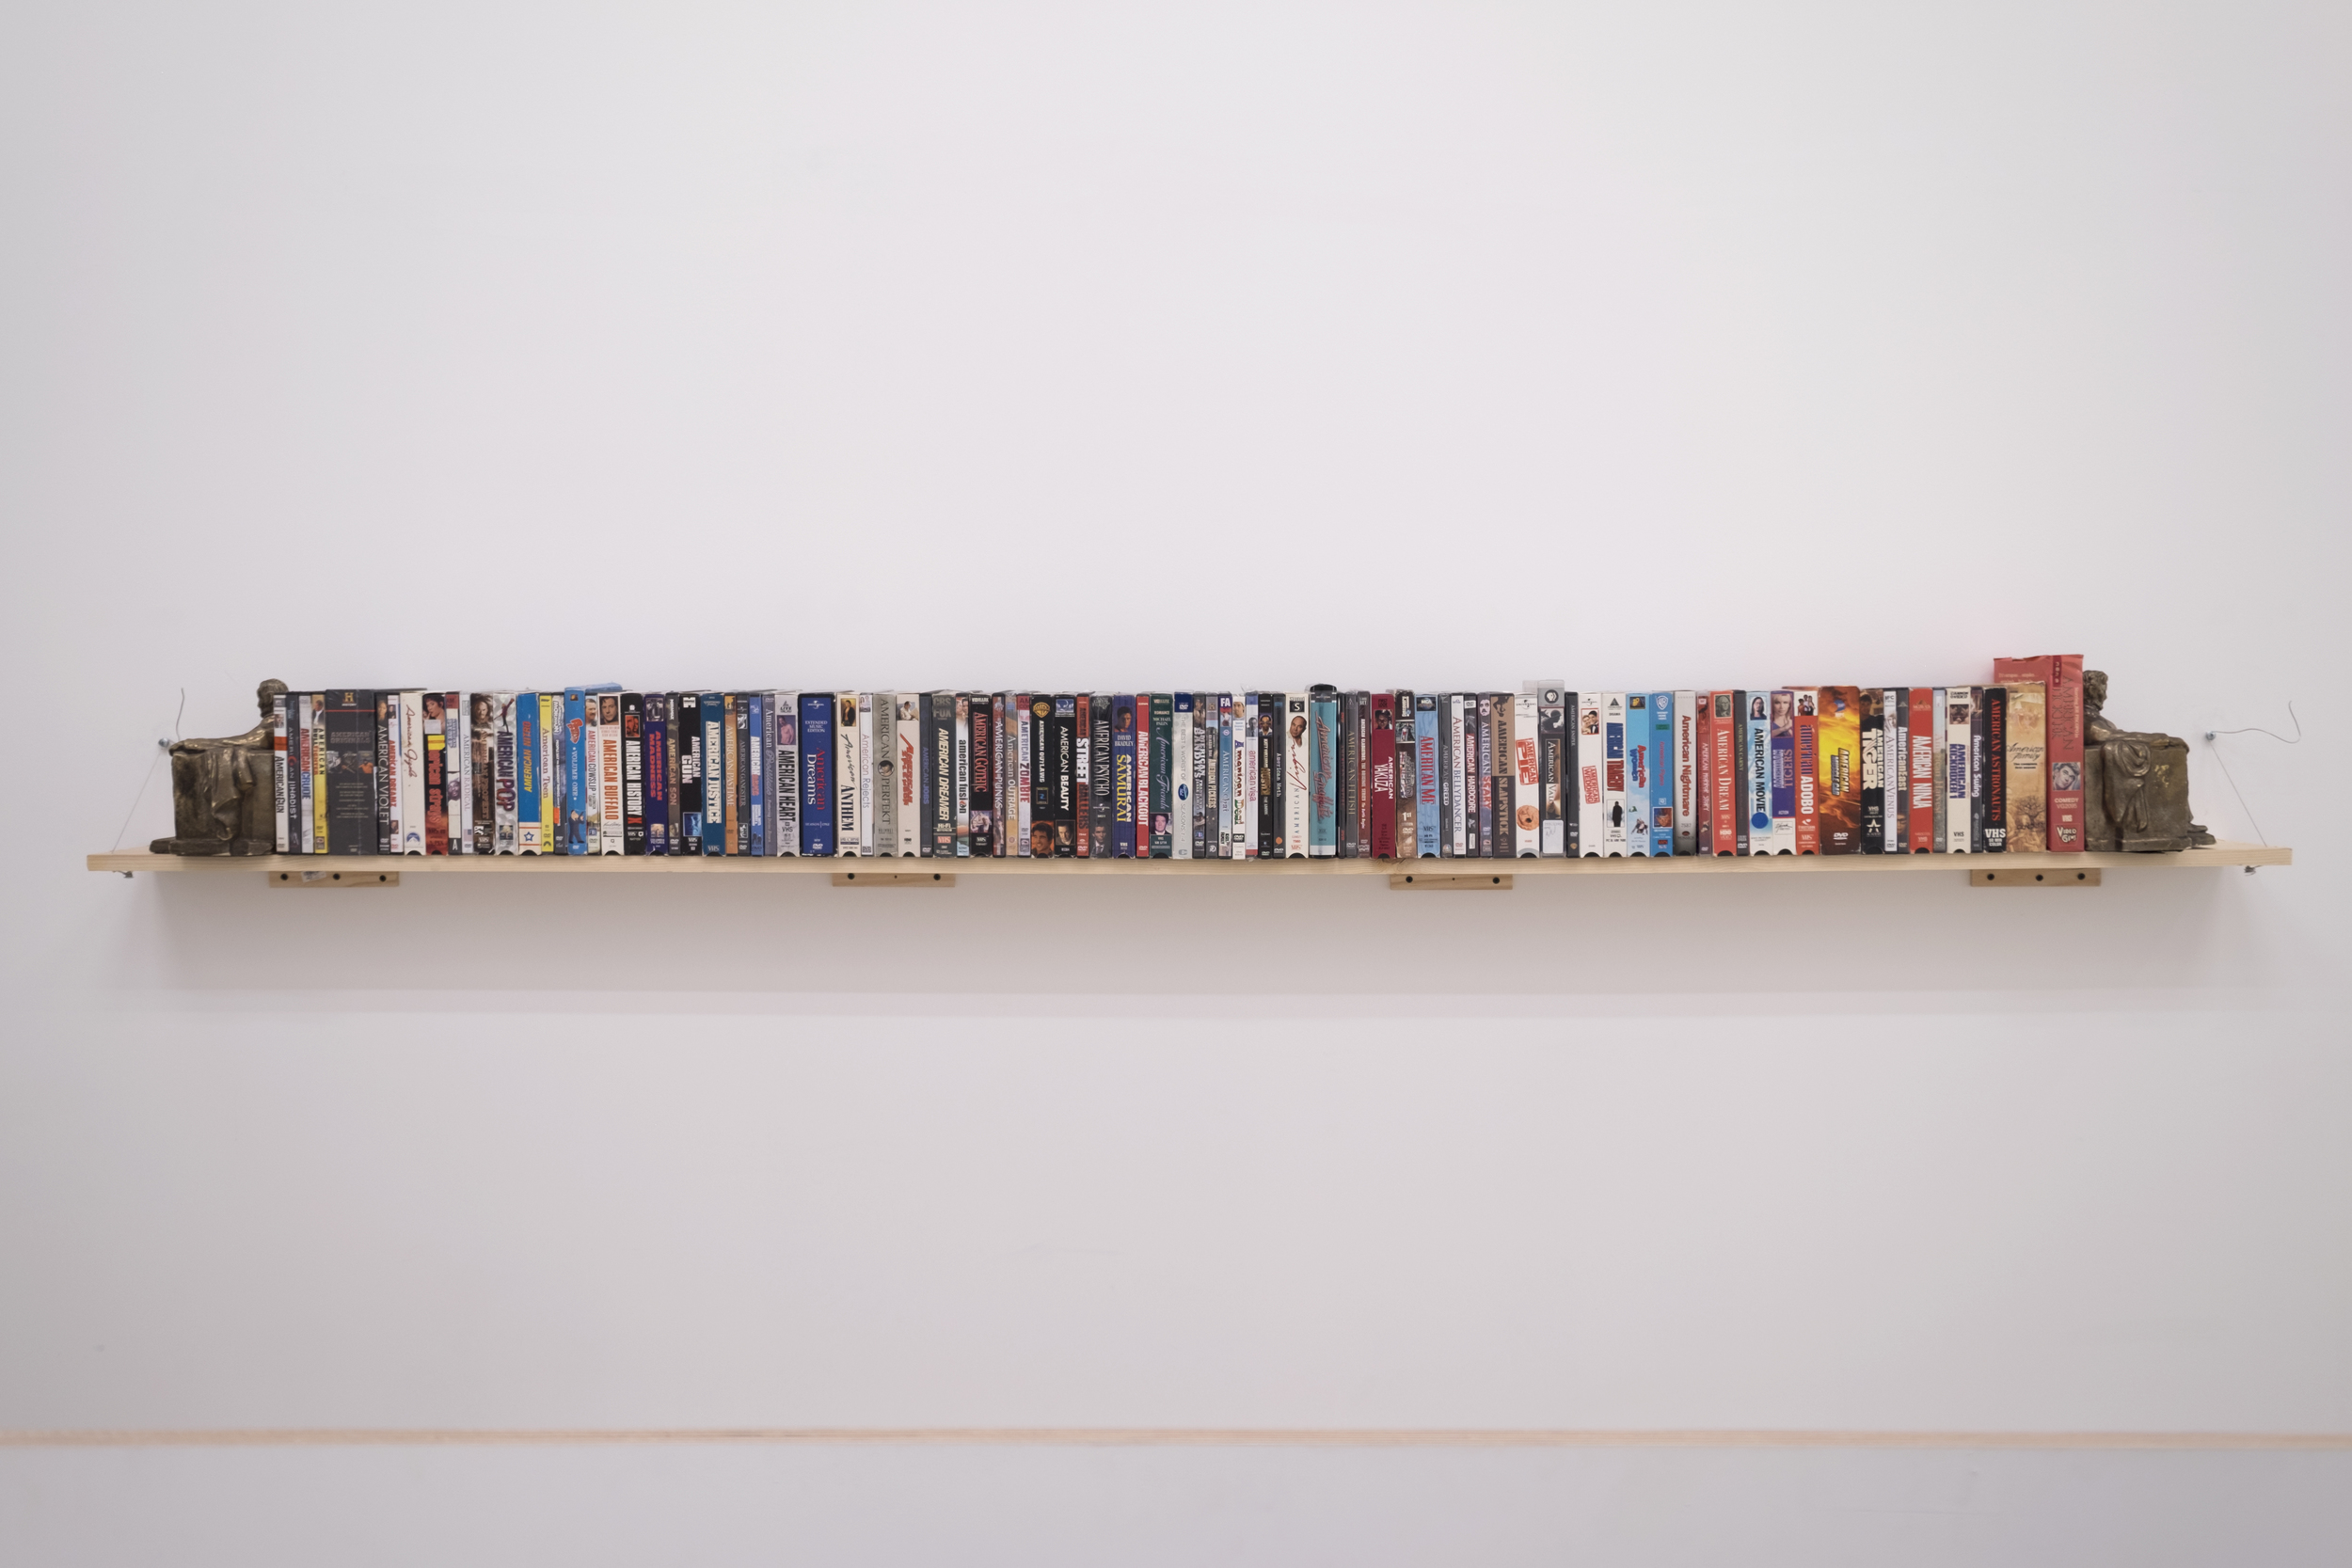 Eric Yahnker   American Piece  2010-2016 94 DVD/VHS media, 2 bookends 9 x 100 x 6 in.